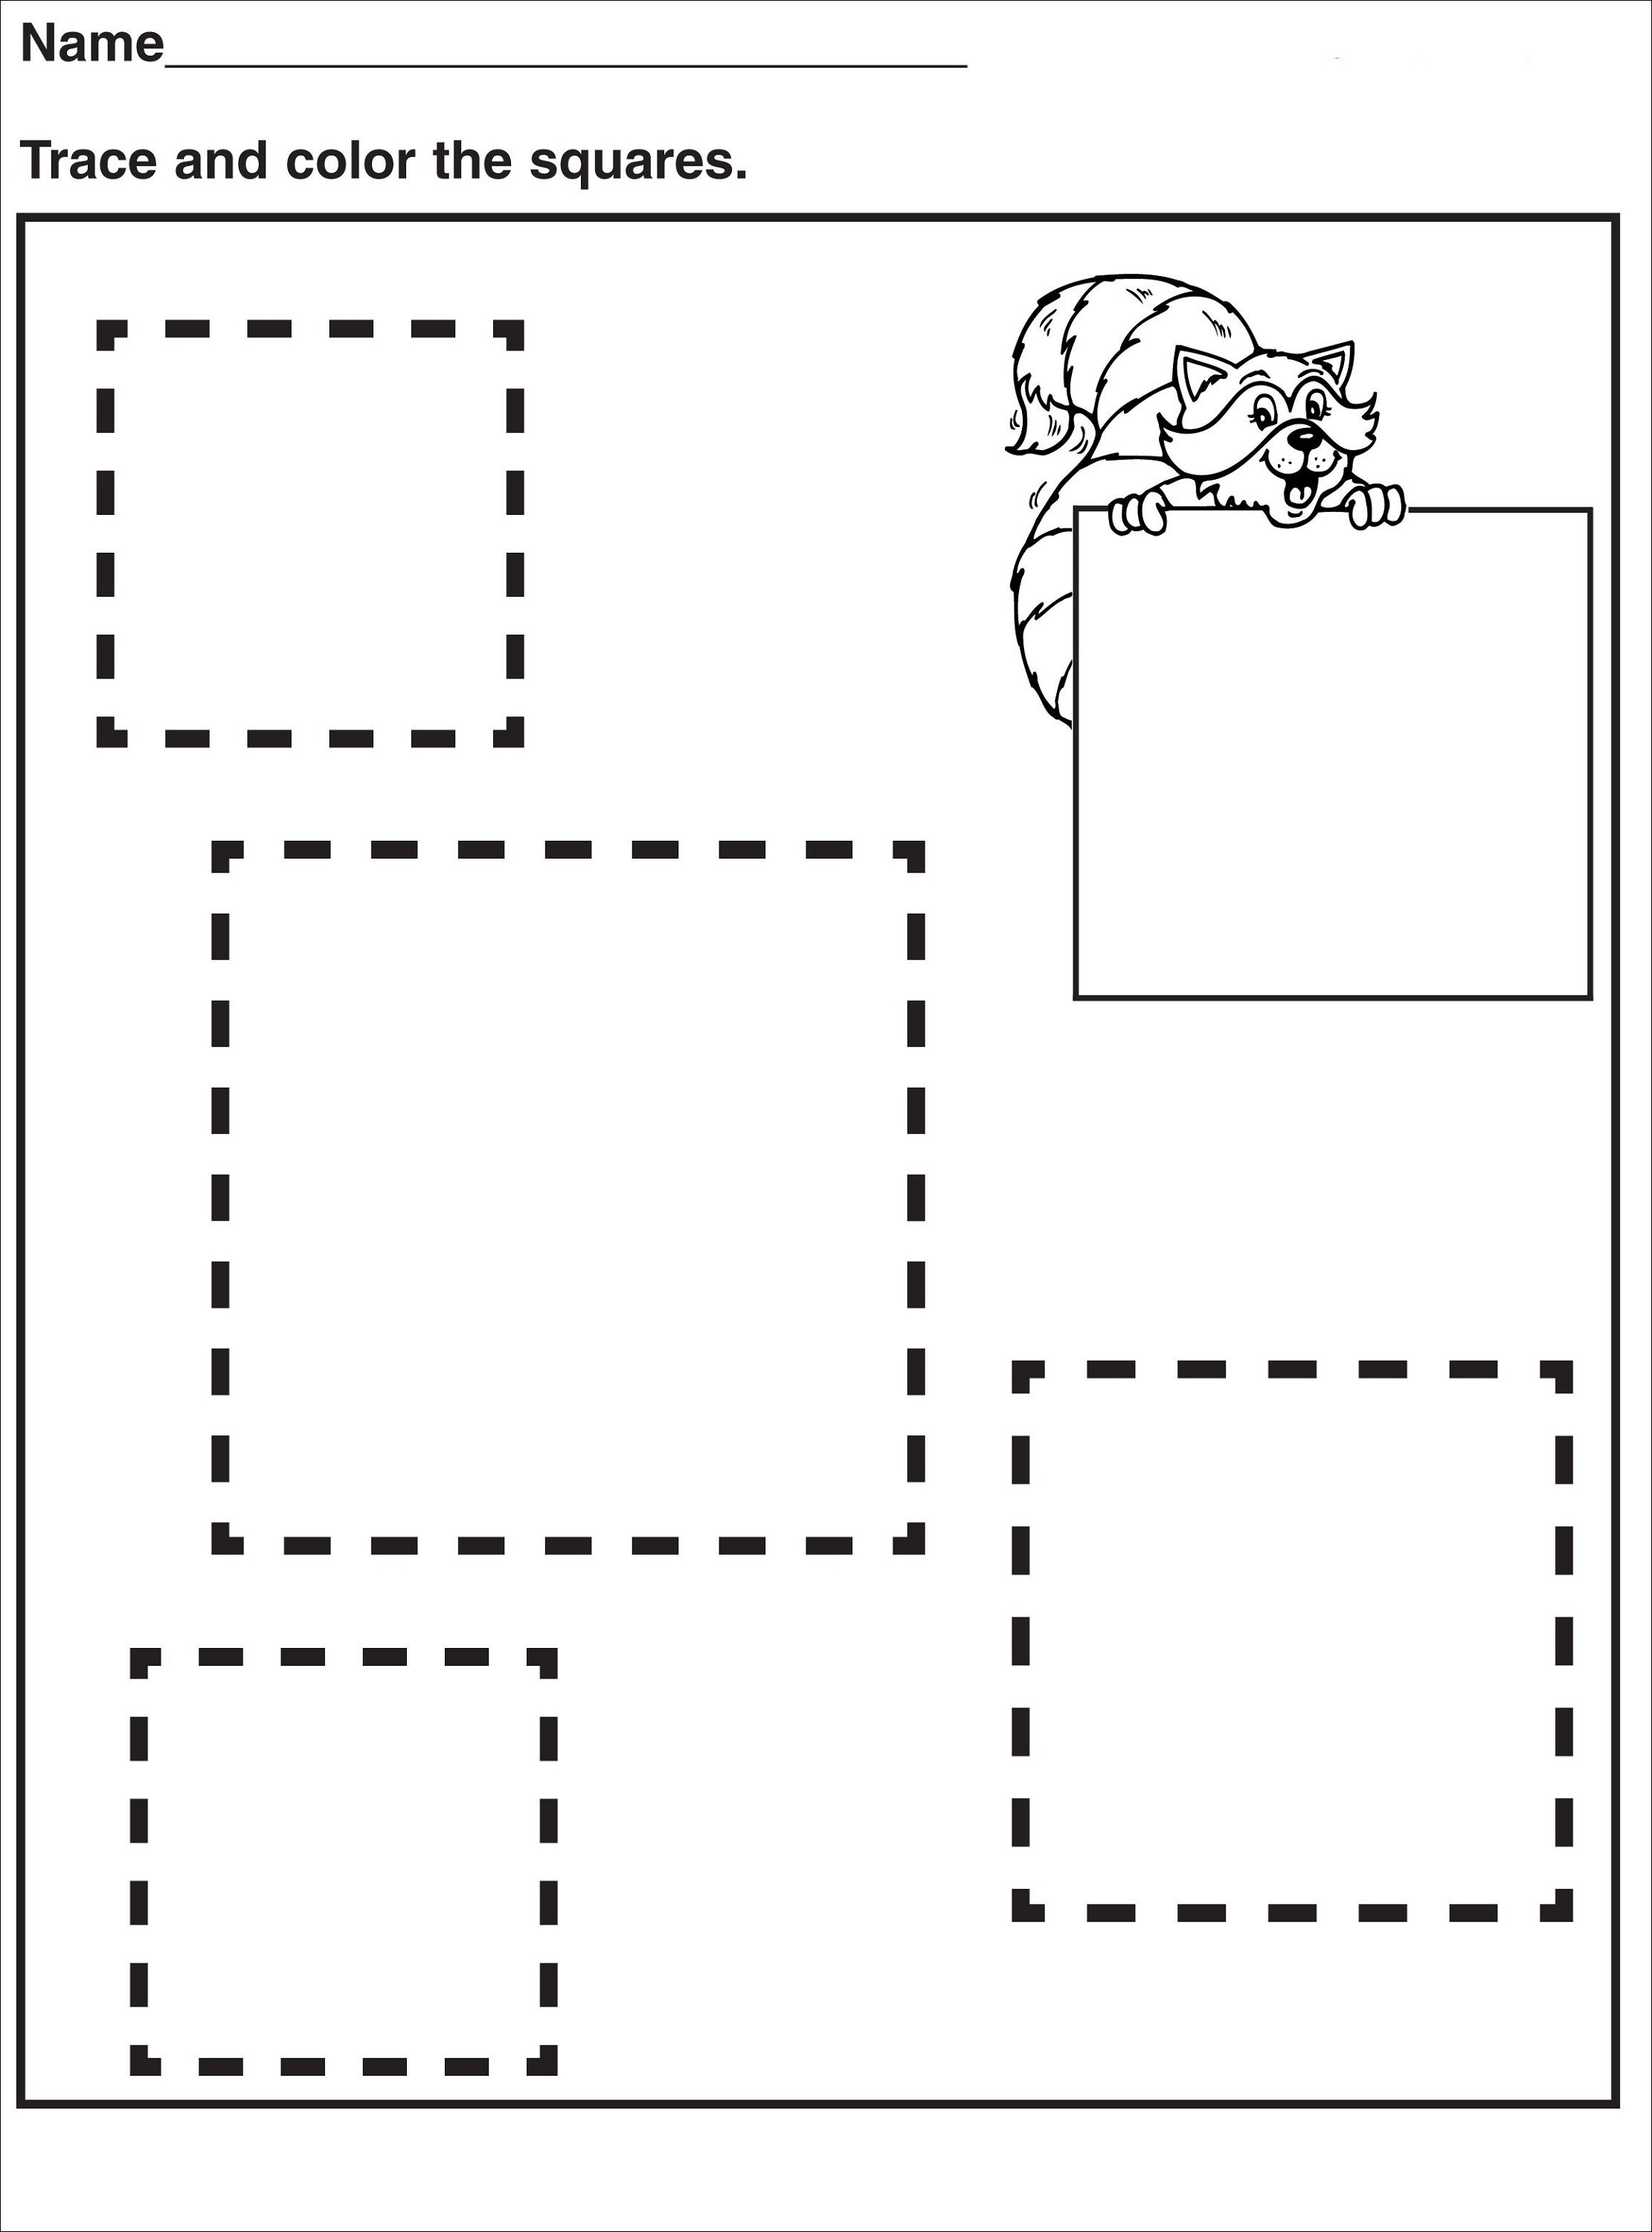 Tracing Pages for Preschool | Activity Shelter | Kids Worksheets ...